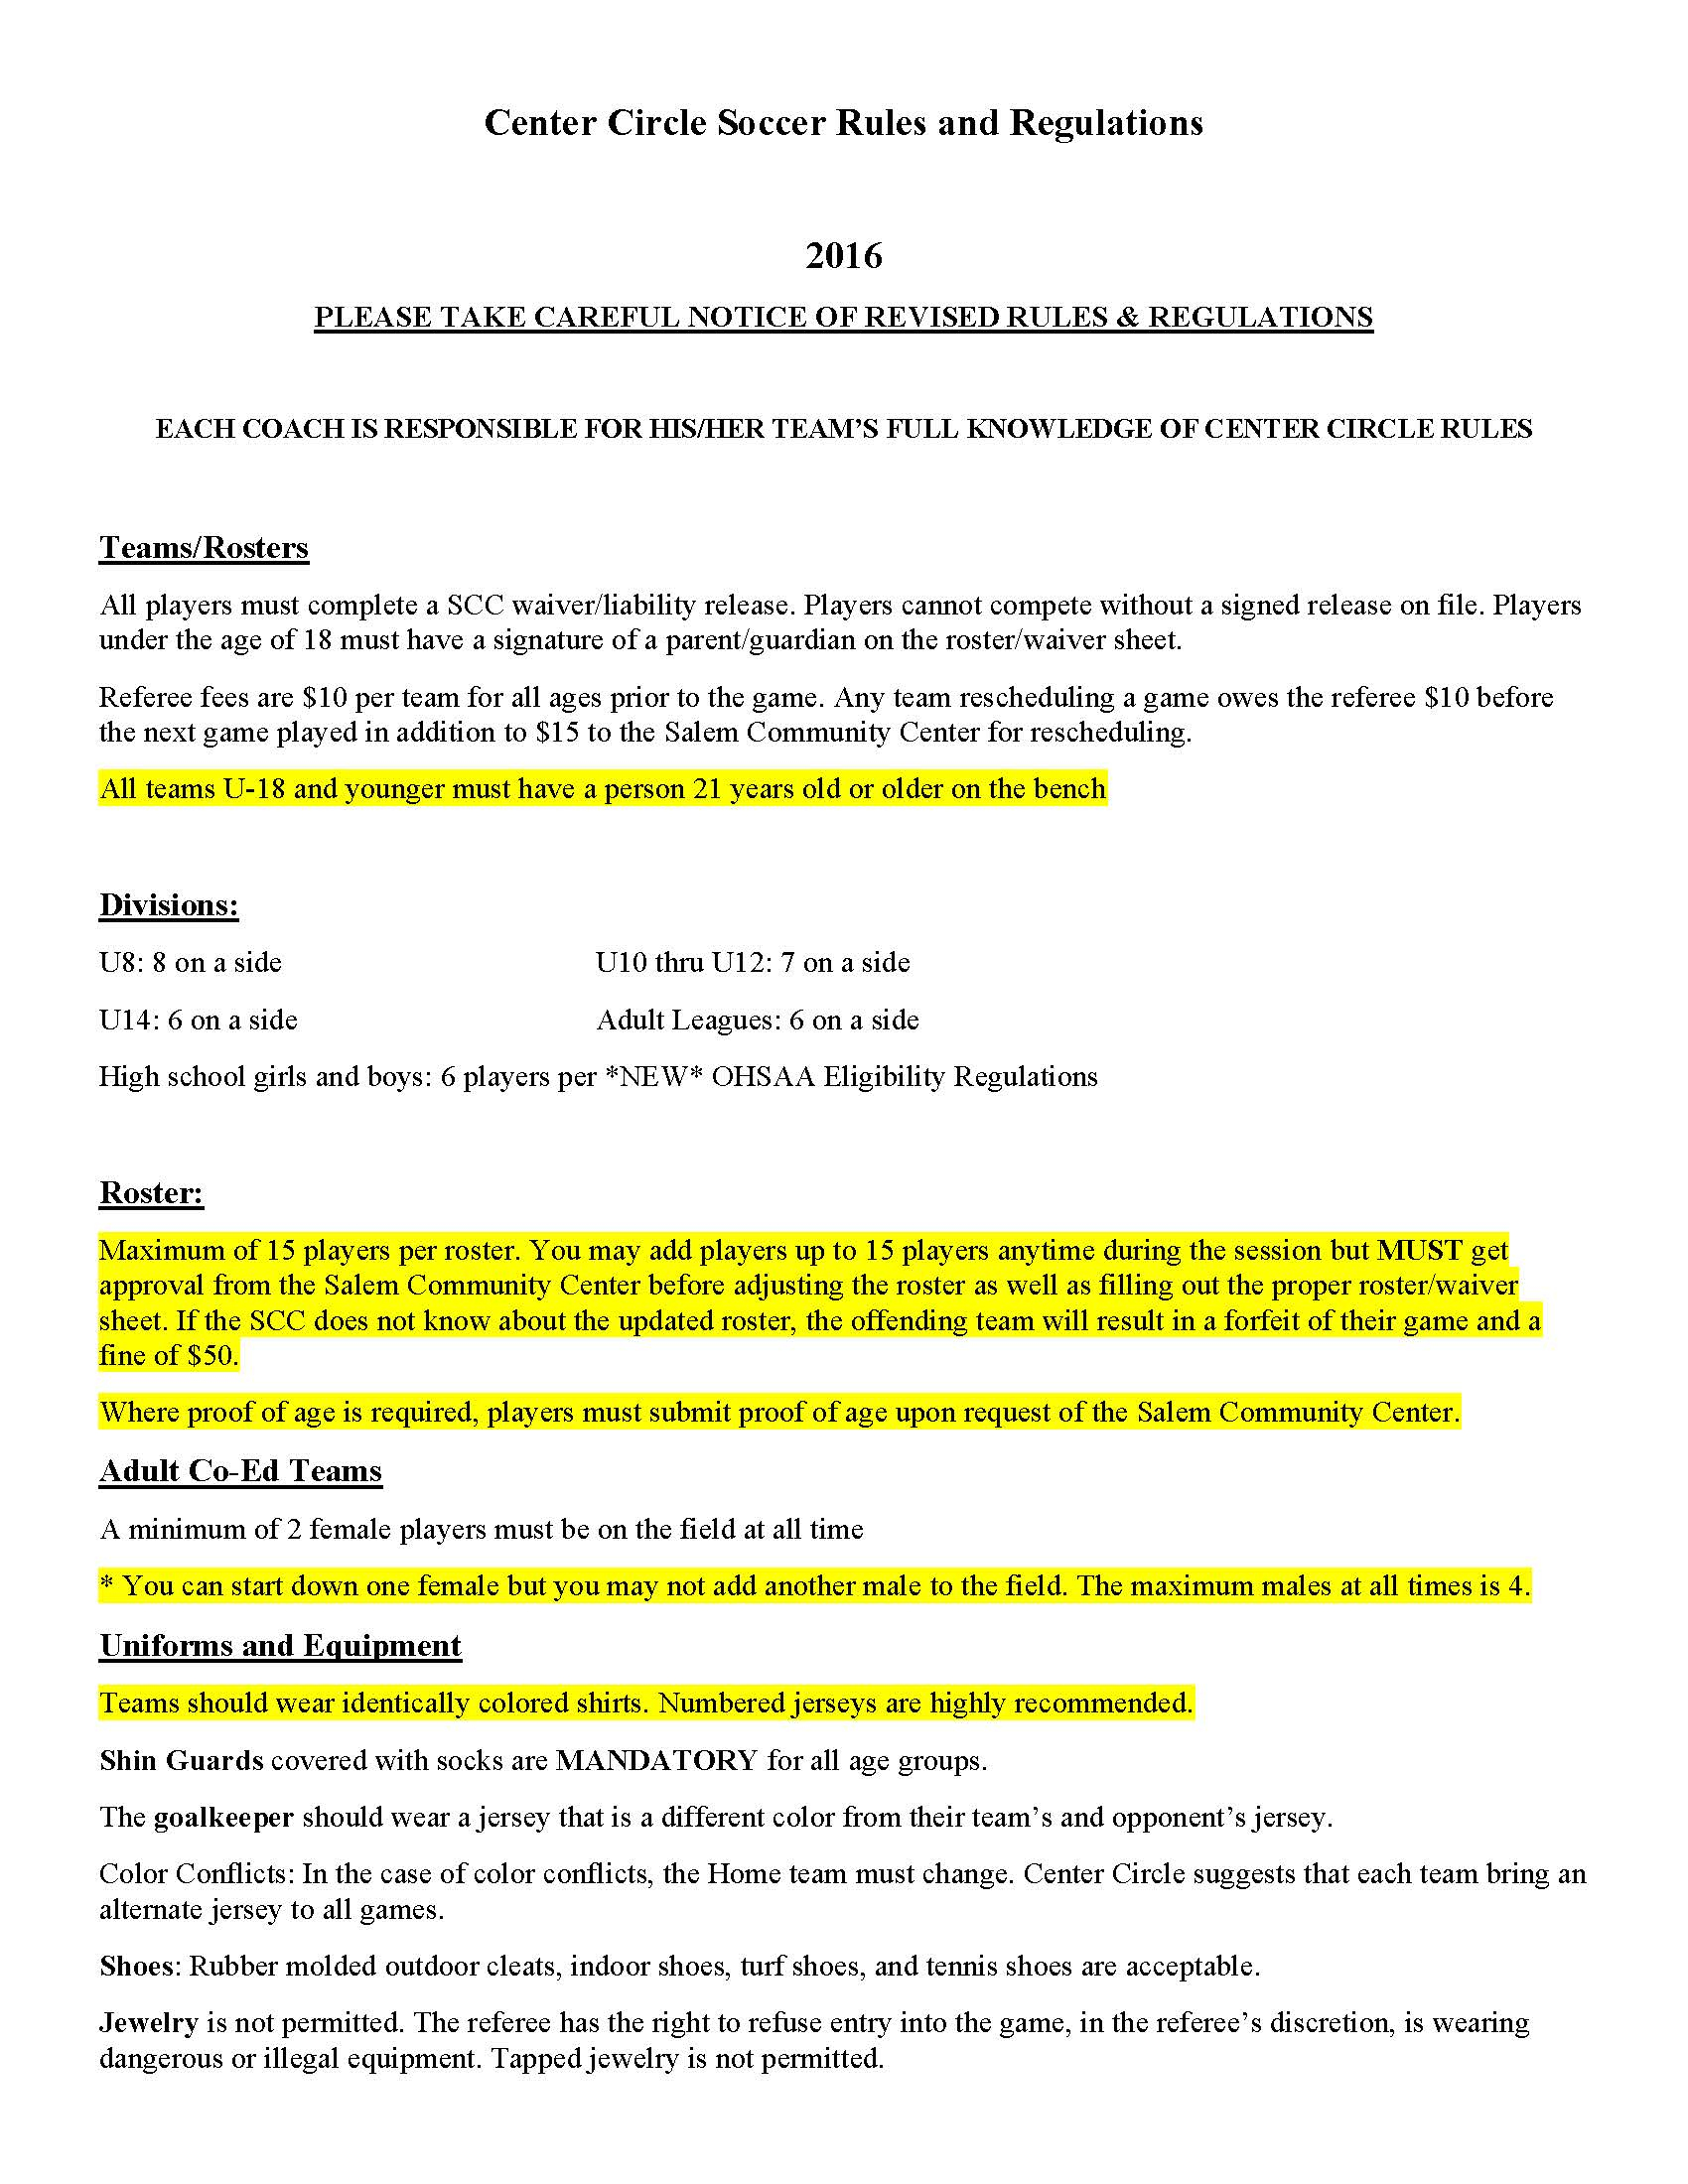 NEW Center Circle Soccer Rules and Regulations Page 1